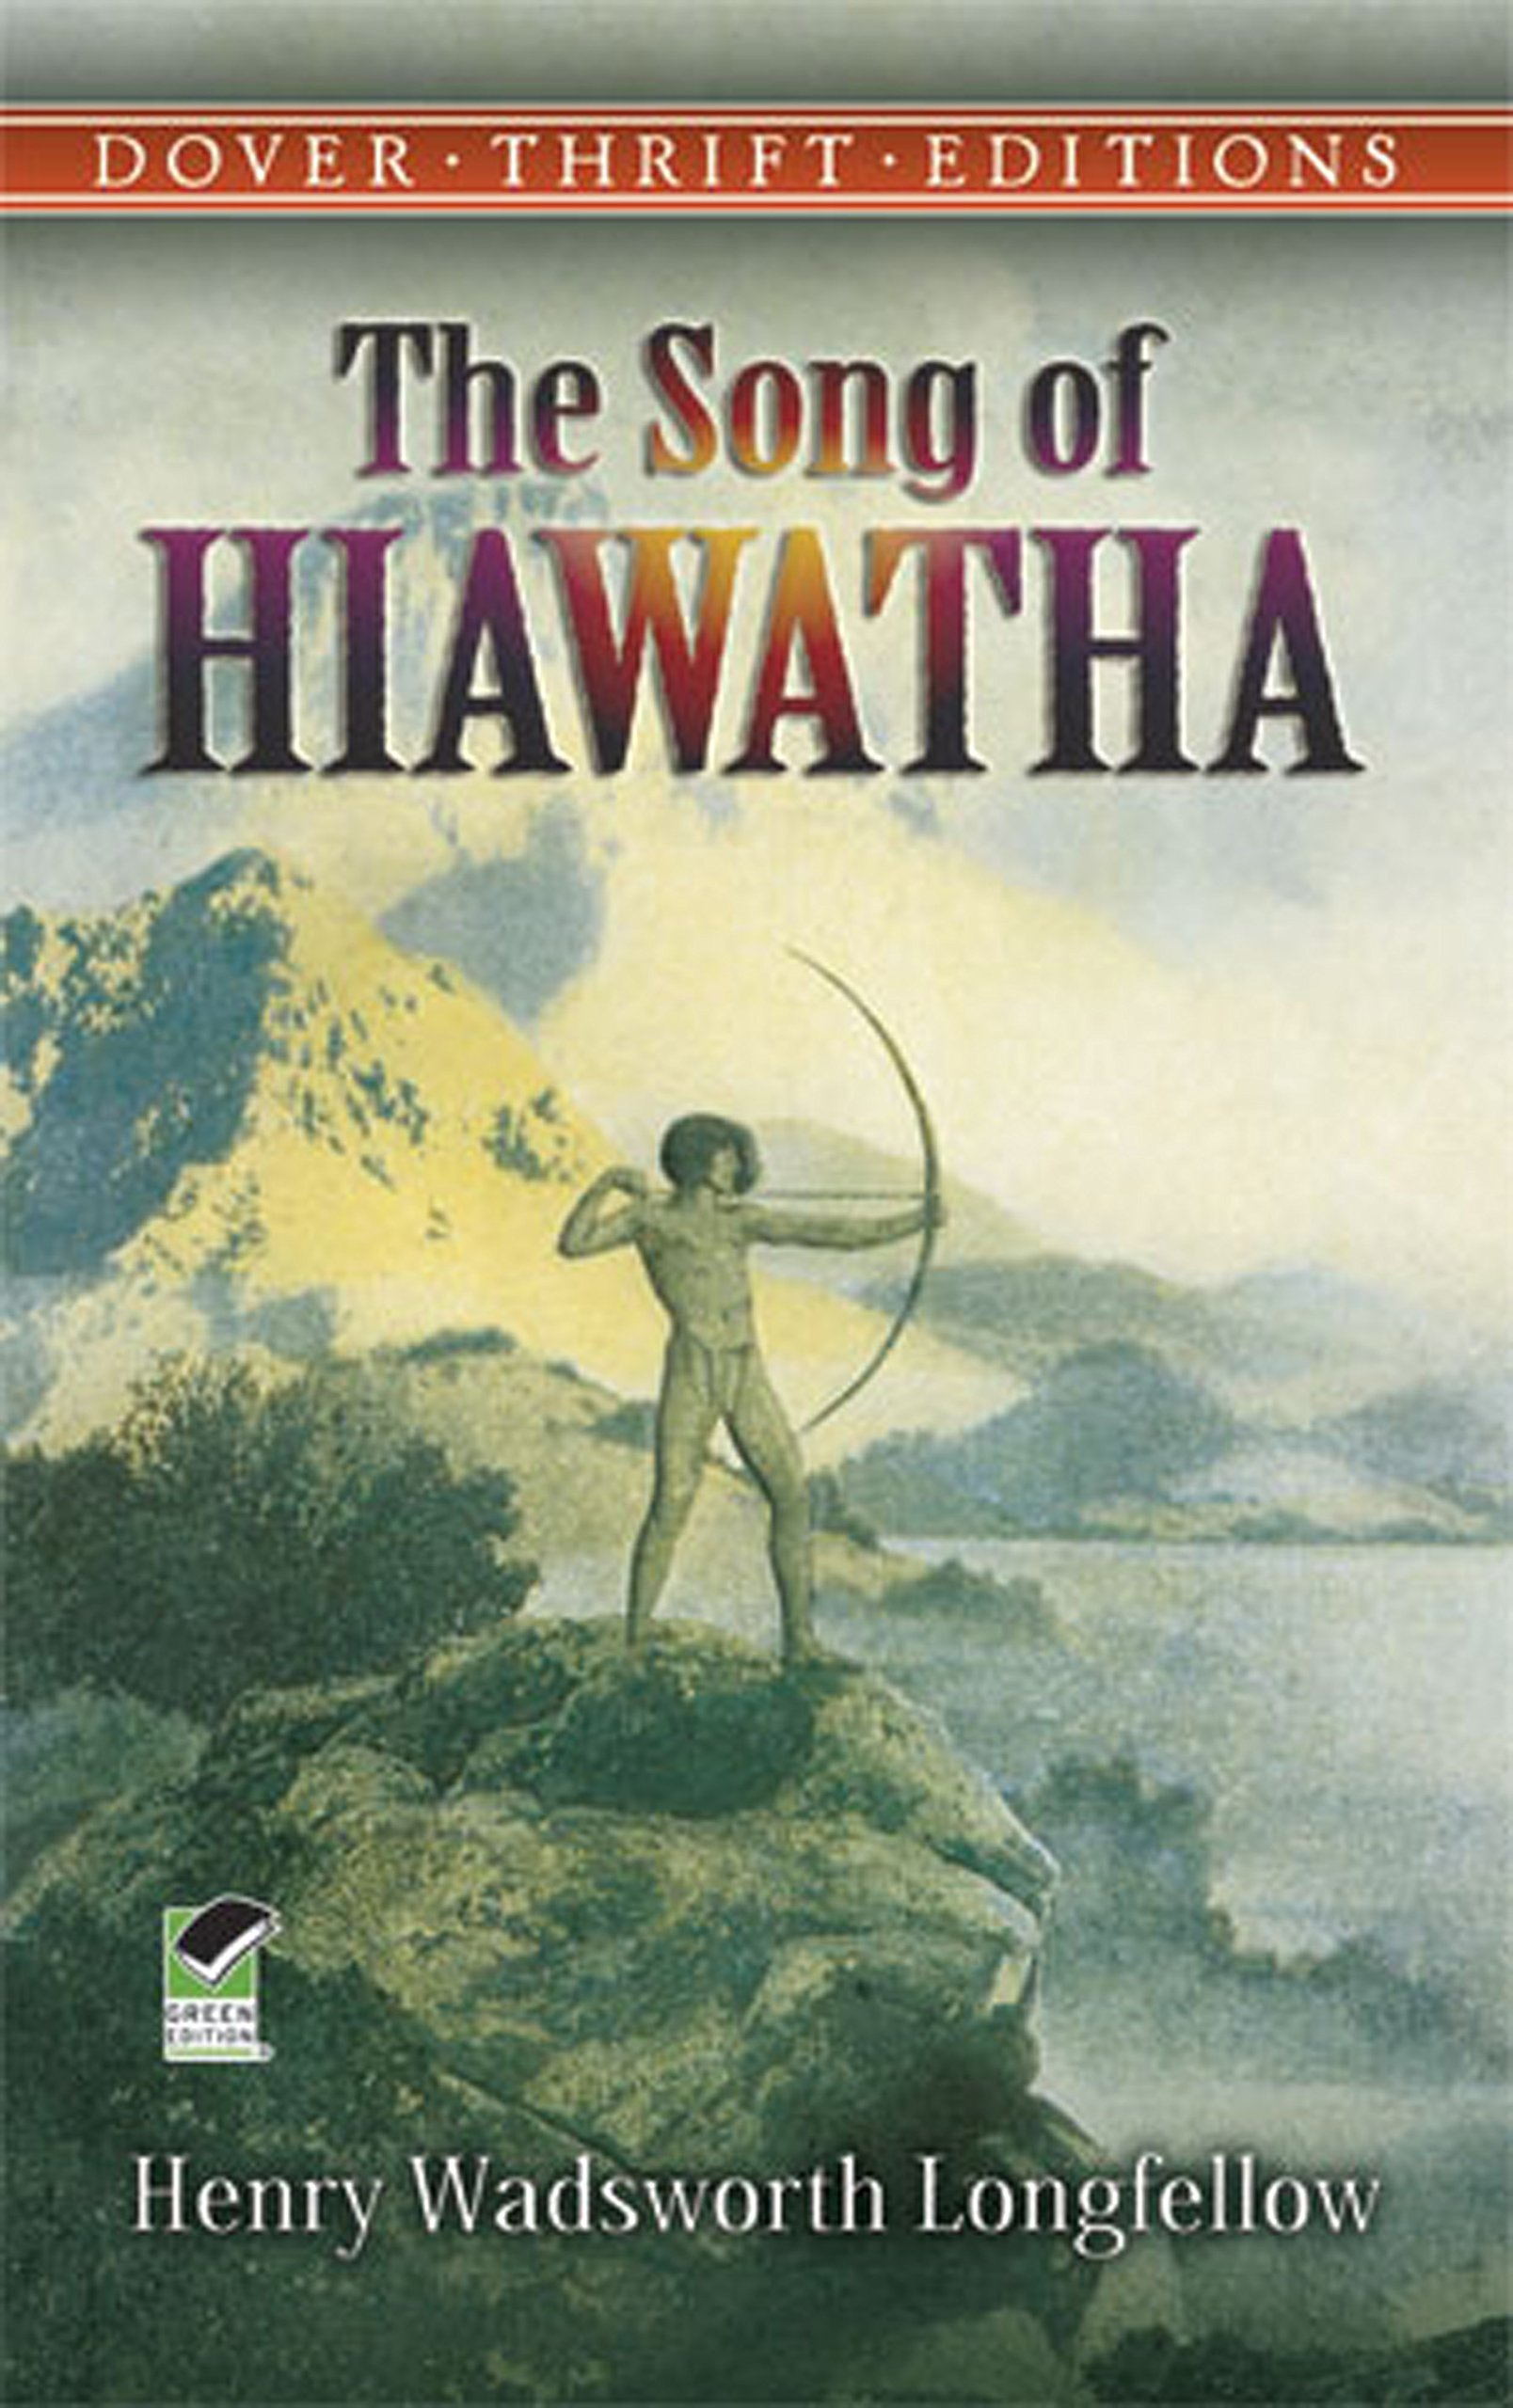 hiawatha poet song of hiawatha by henry wadsworth longfellow the  the song of hiawatha dover thrift editions henry wadsworth the song of hiawatha dover thrift editions